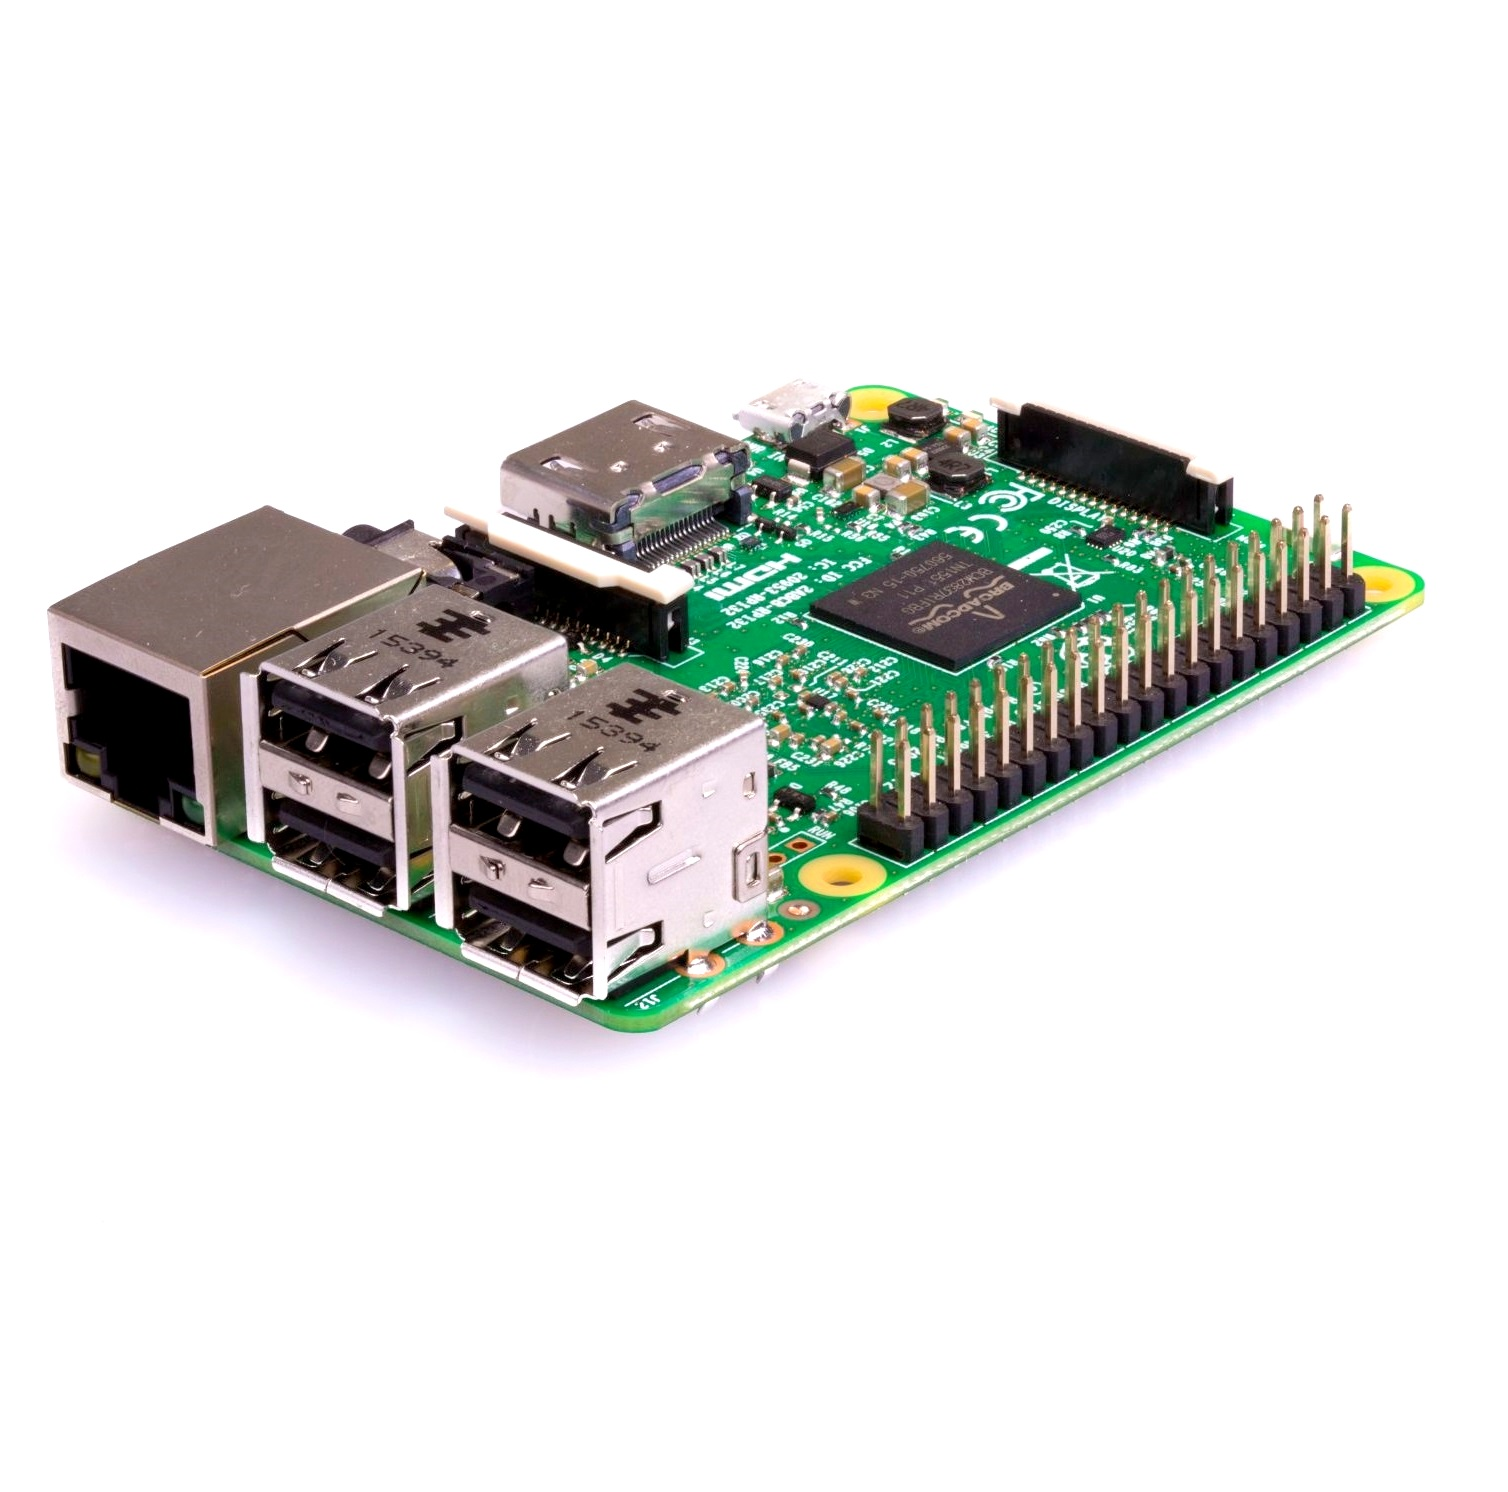 Raspberry Pi 3 - Model B Original with Onboard WiFi and Bluetooth - Robu in  | Indian Online Store | RC Hobby | Robotics